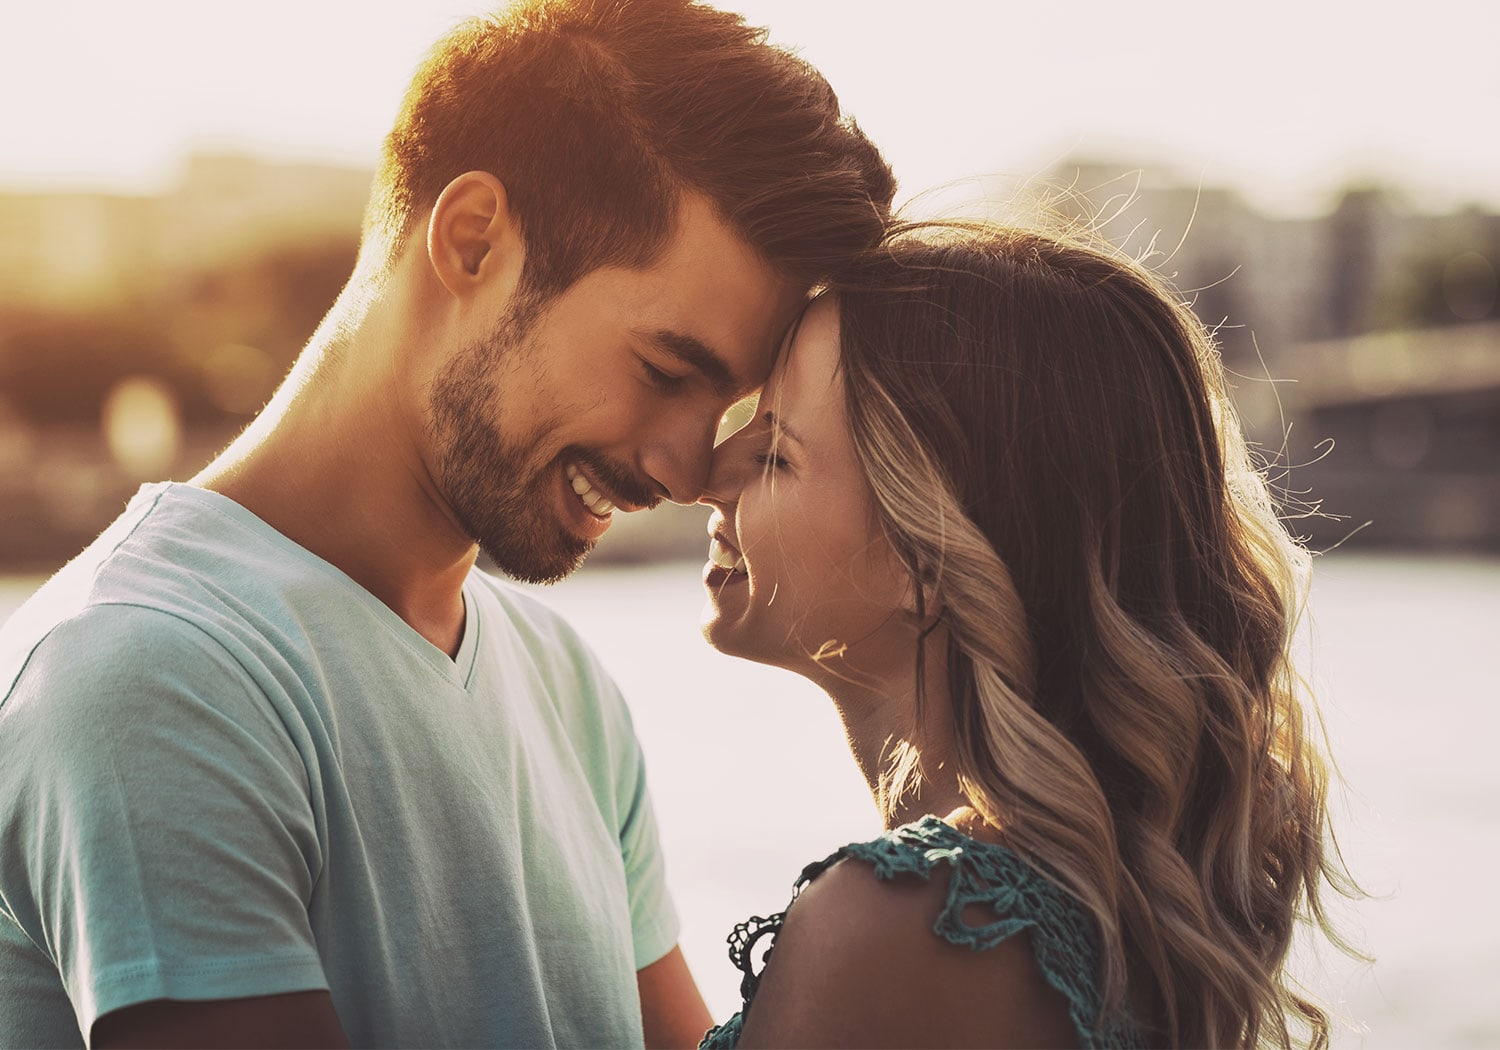 Engagement and marriage: 8 signs that you are ready